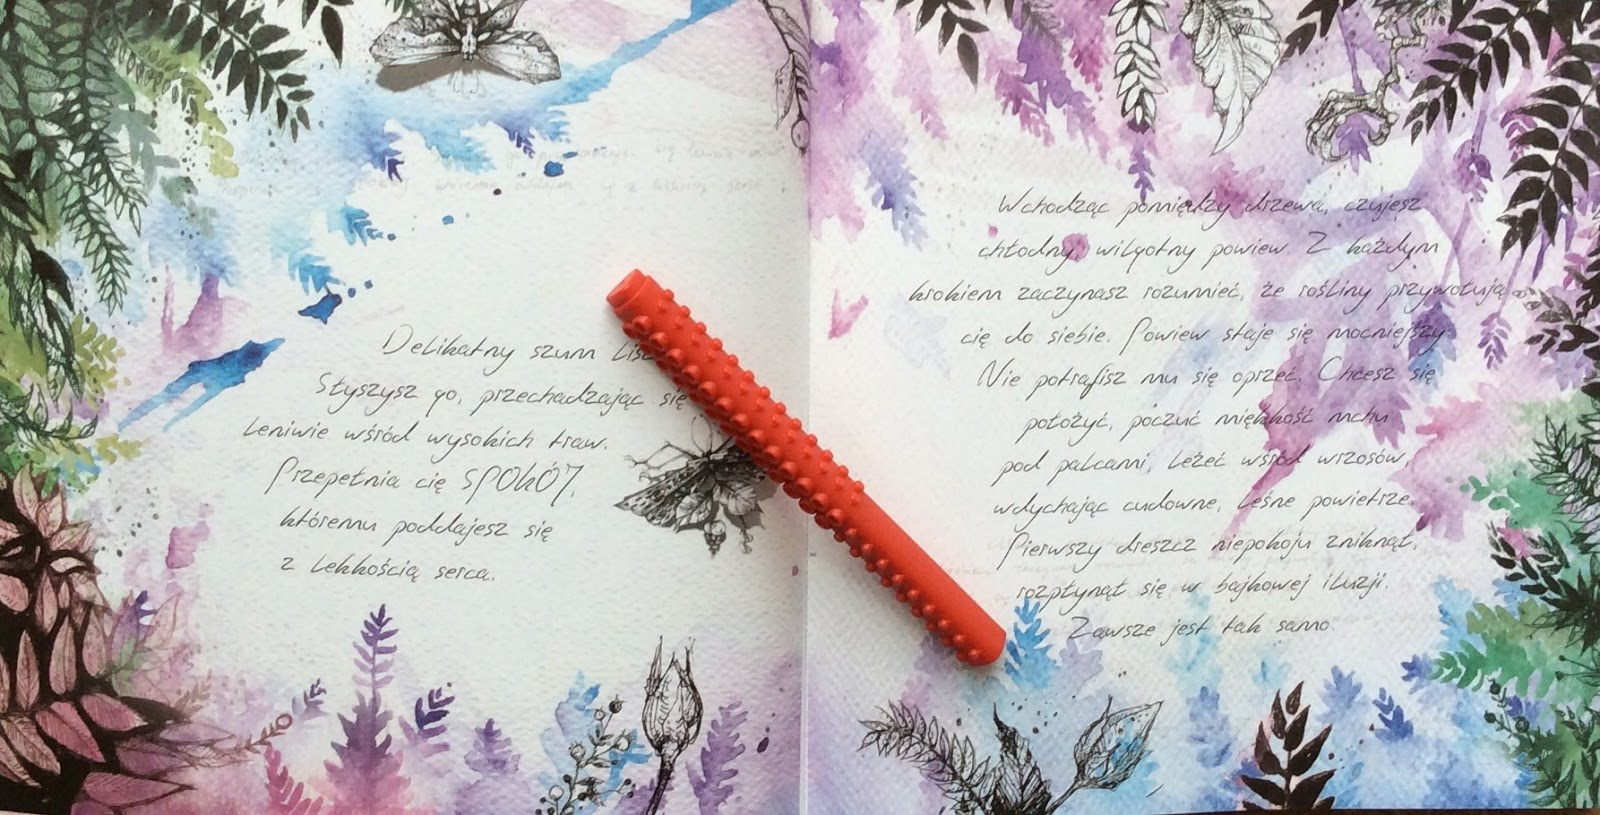 Colouring with Prue Po drugiej